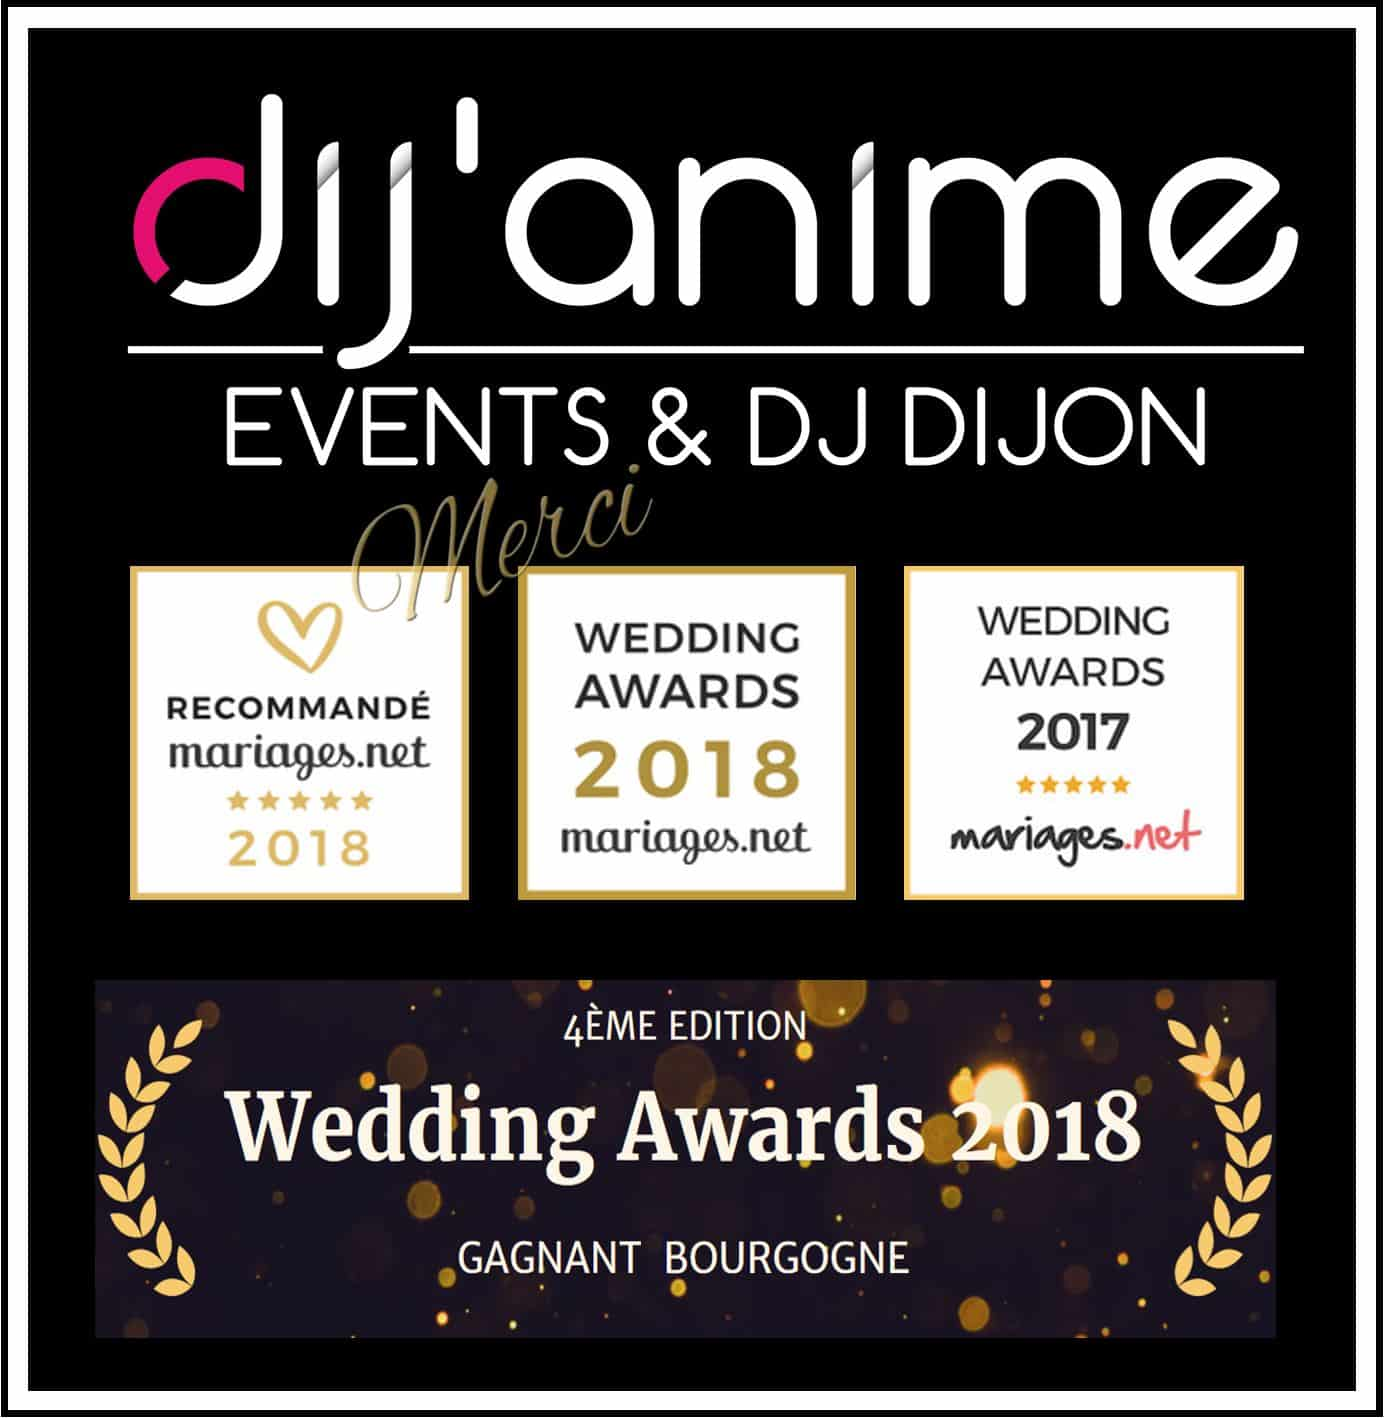 Le Wedding Awards 2017 & 2018